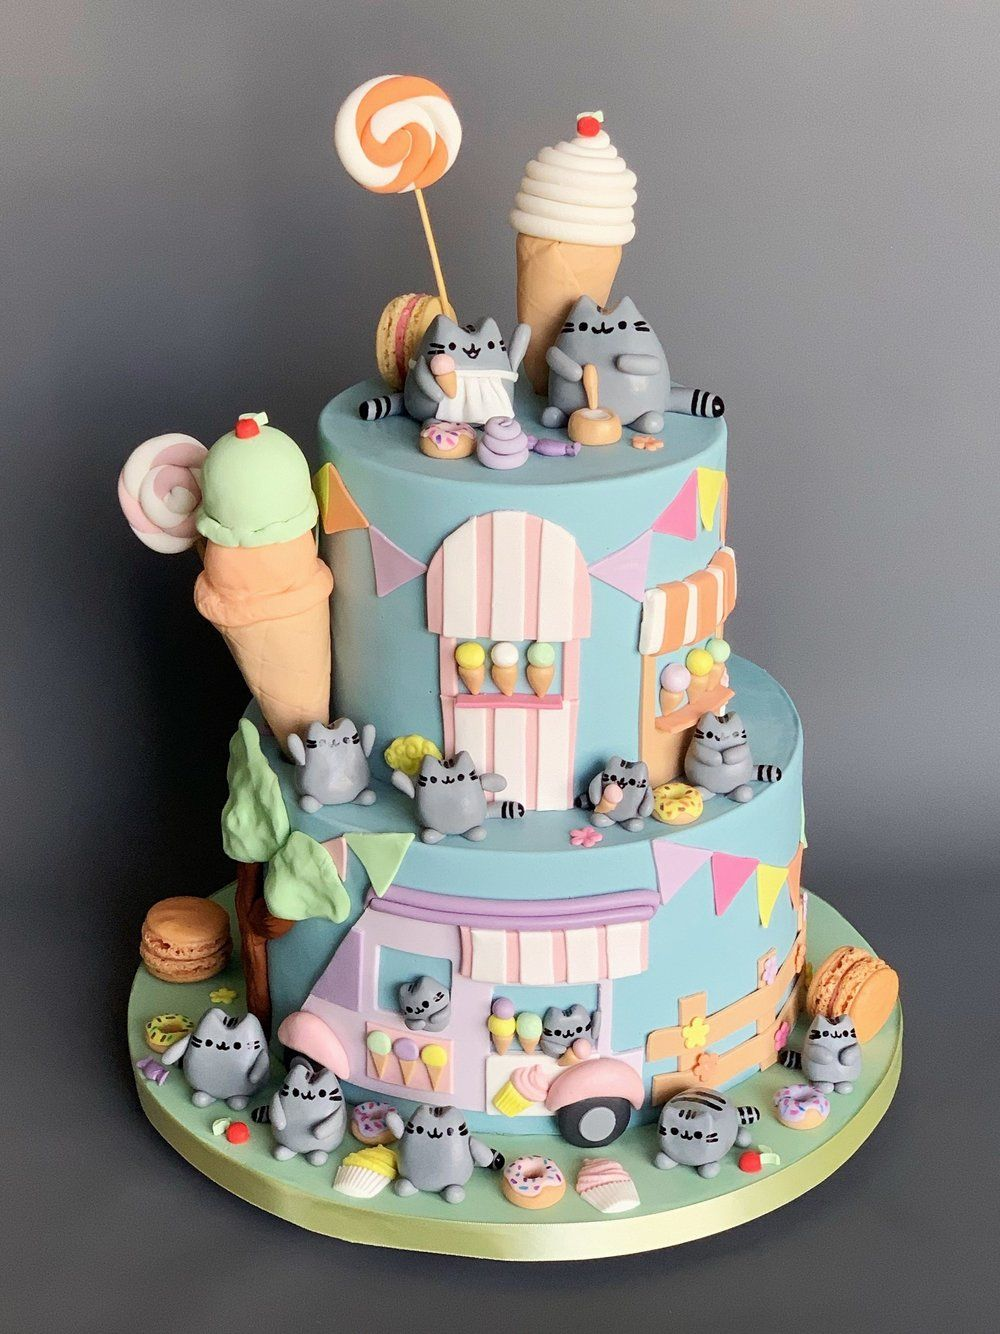 Novelty & Sculpted Cakes — Honey Crumb Cake Studio